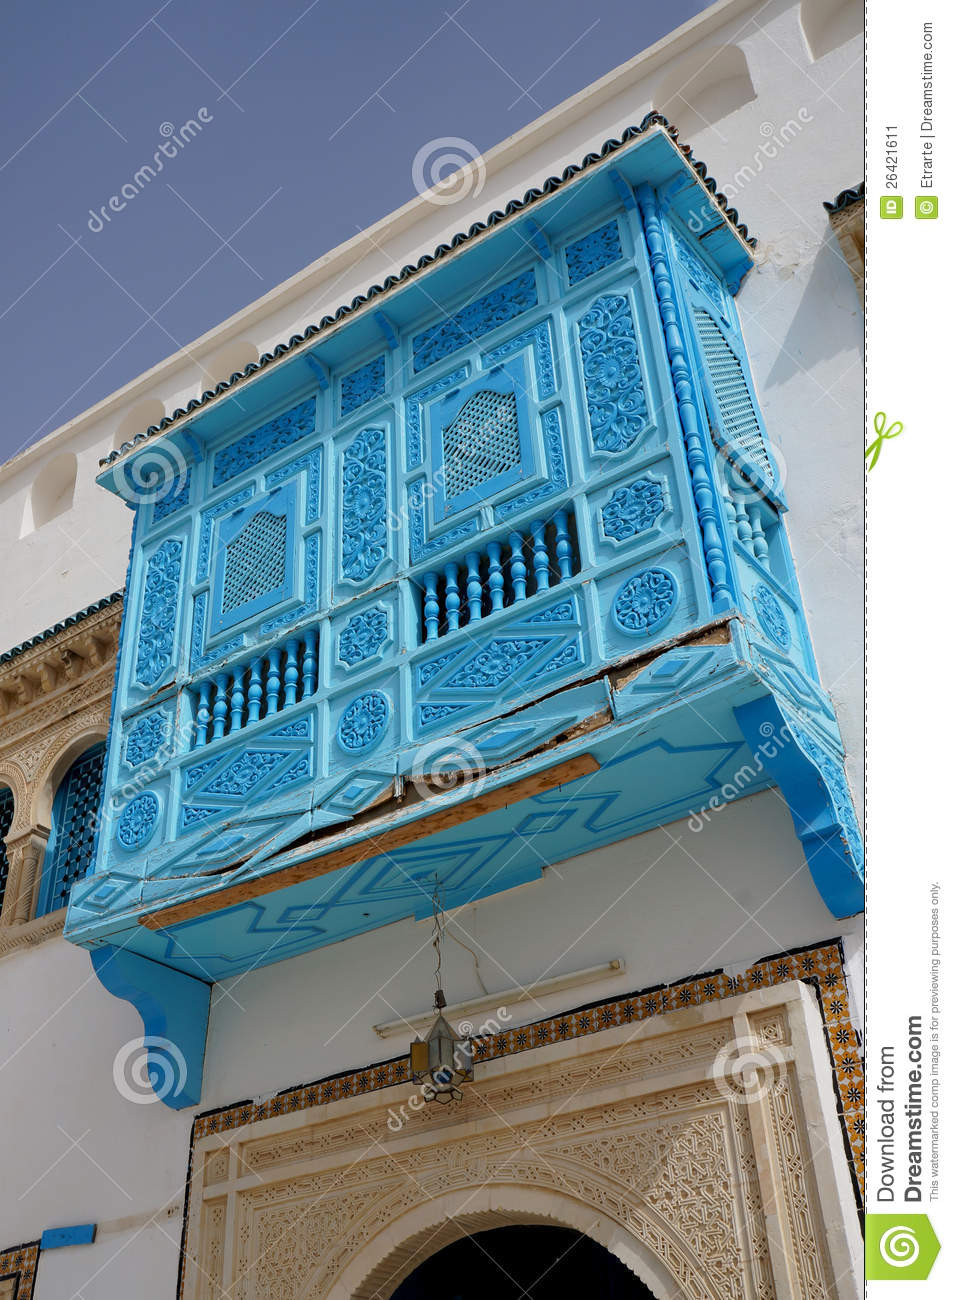 architecture tunisienne traditionnelle image stock image